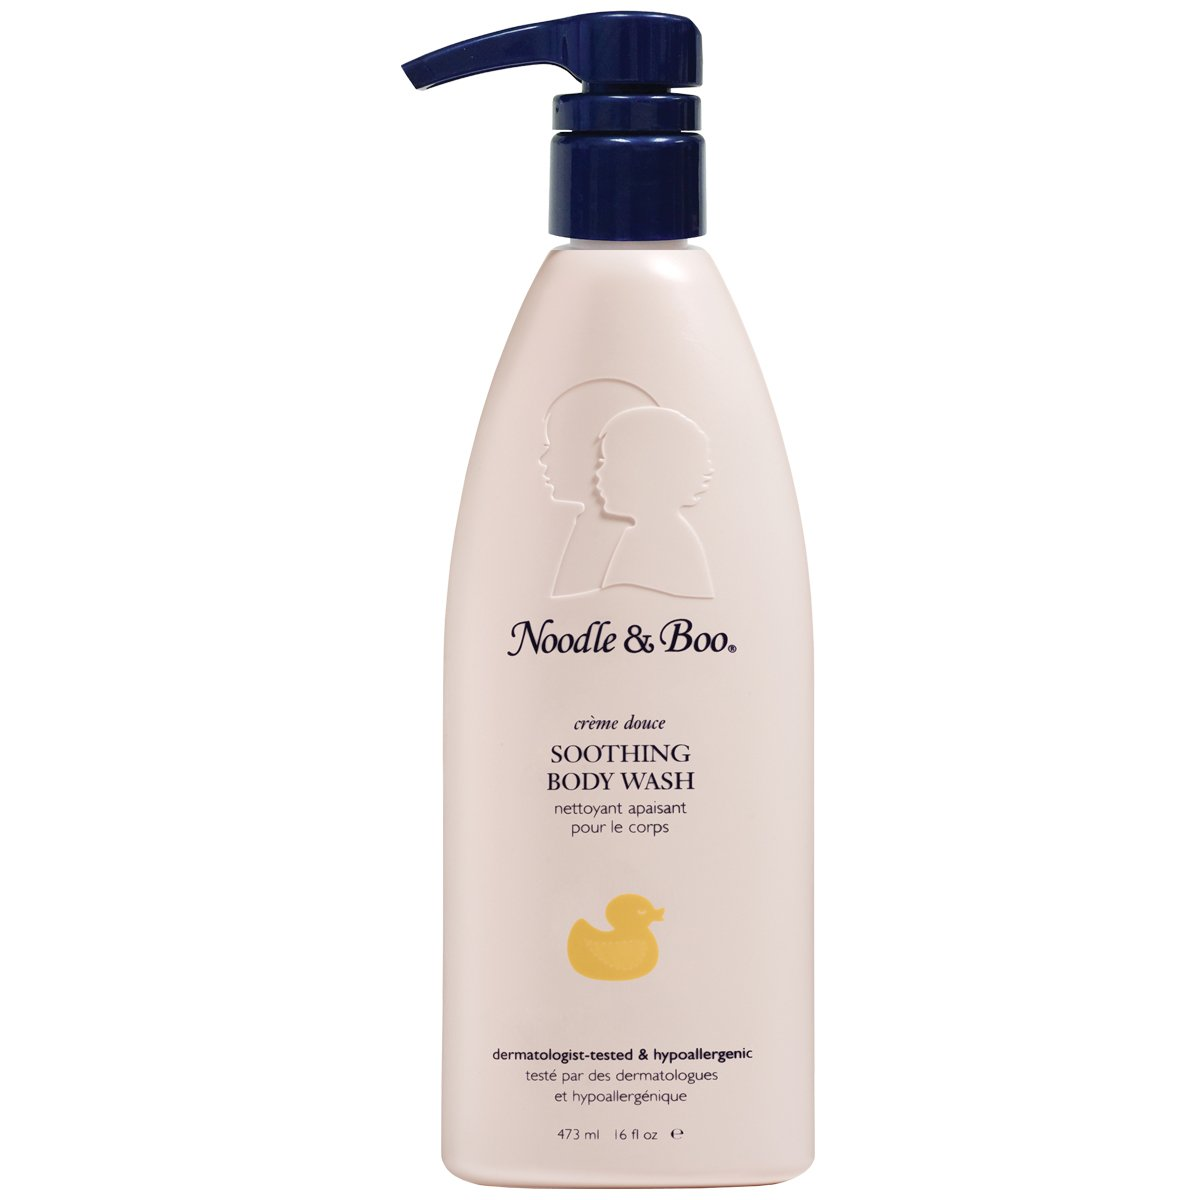 Noodle & Boo Soothing Body Wash, 8 Ounce Bottle NB-00010